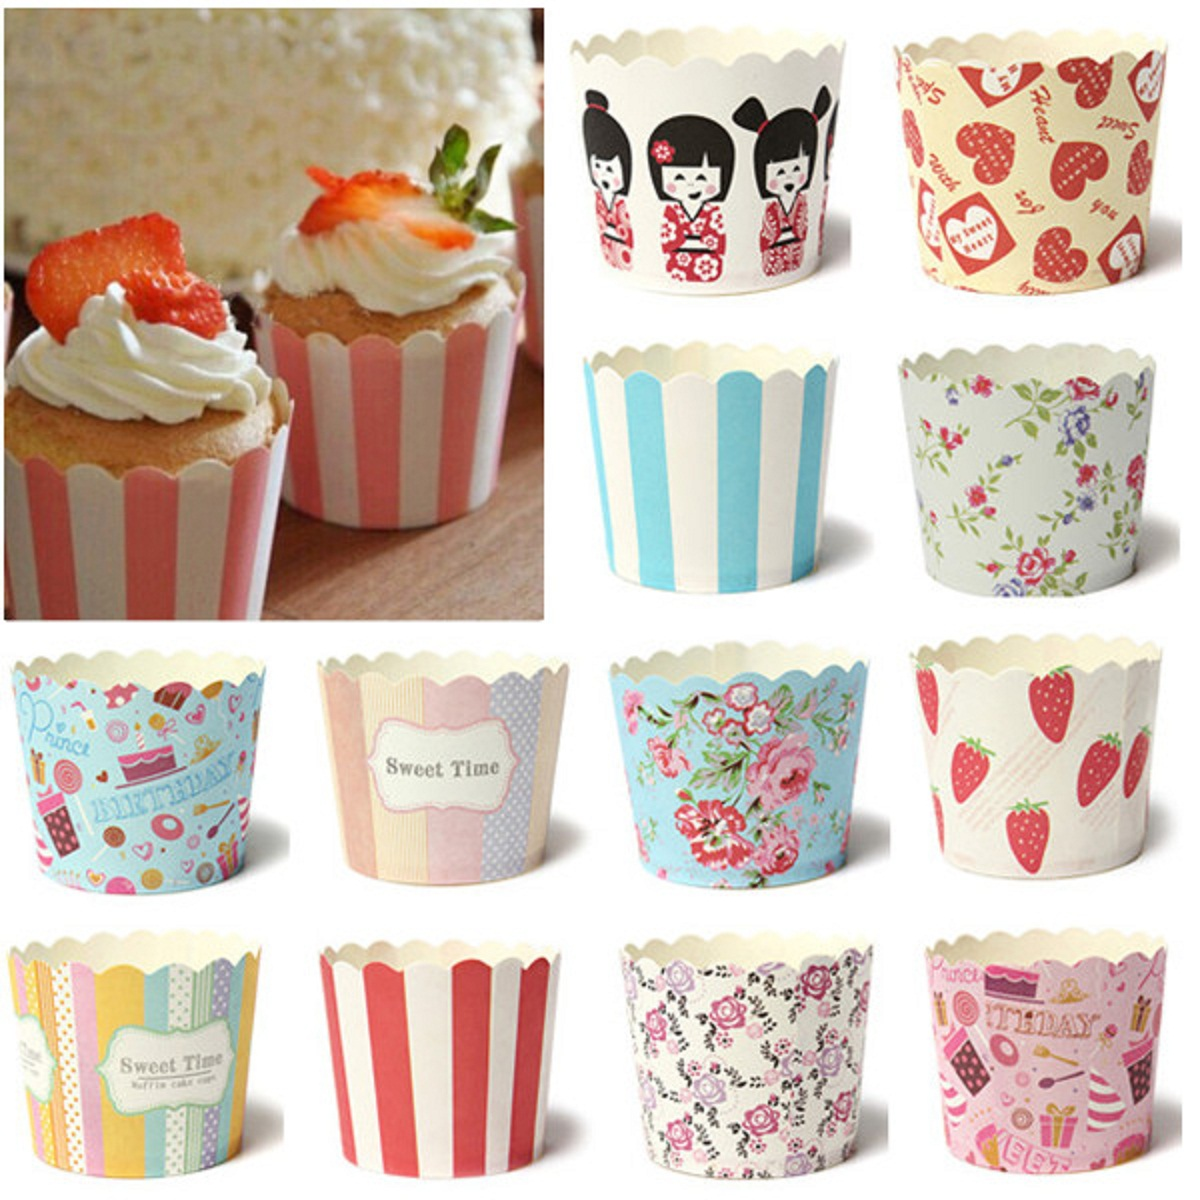 50Pcs Paper Cake Cup Cupcake Cases Liners Muffin Dessert Baking ...